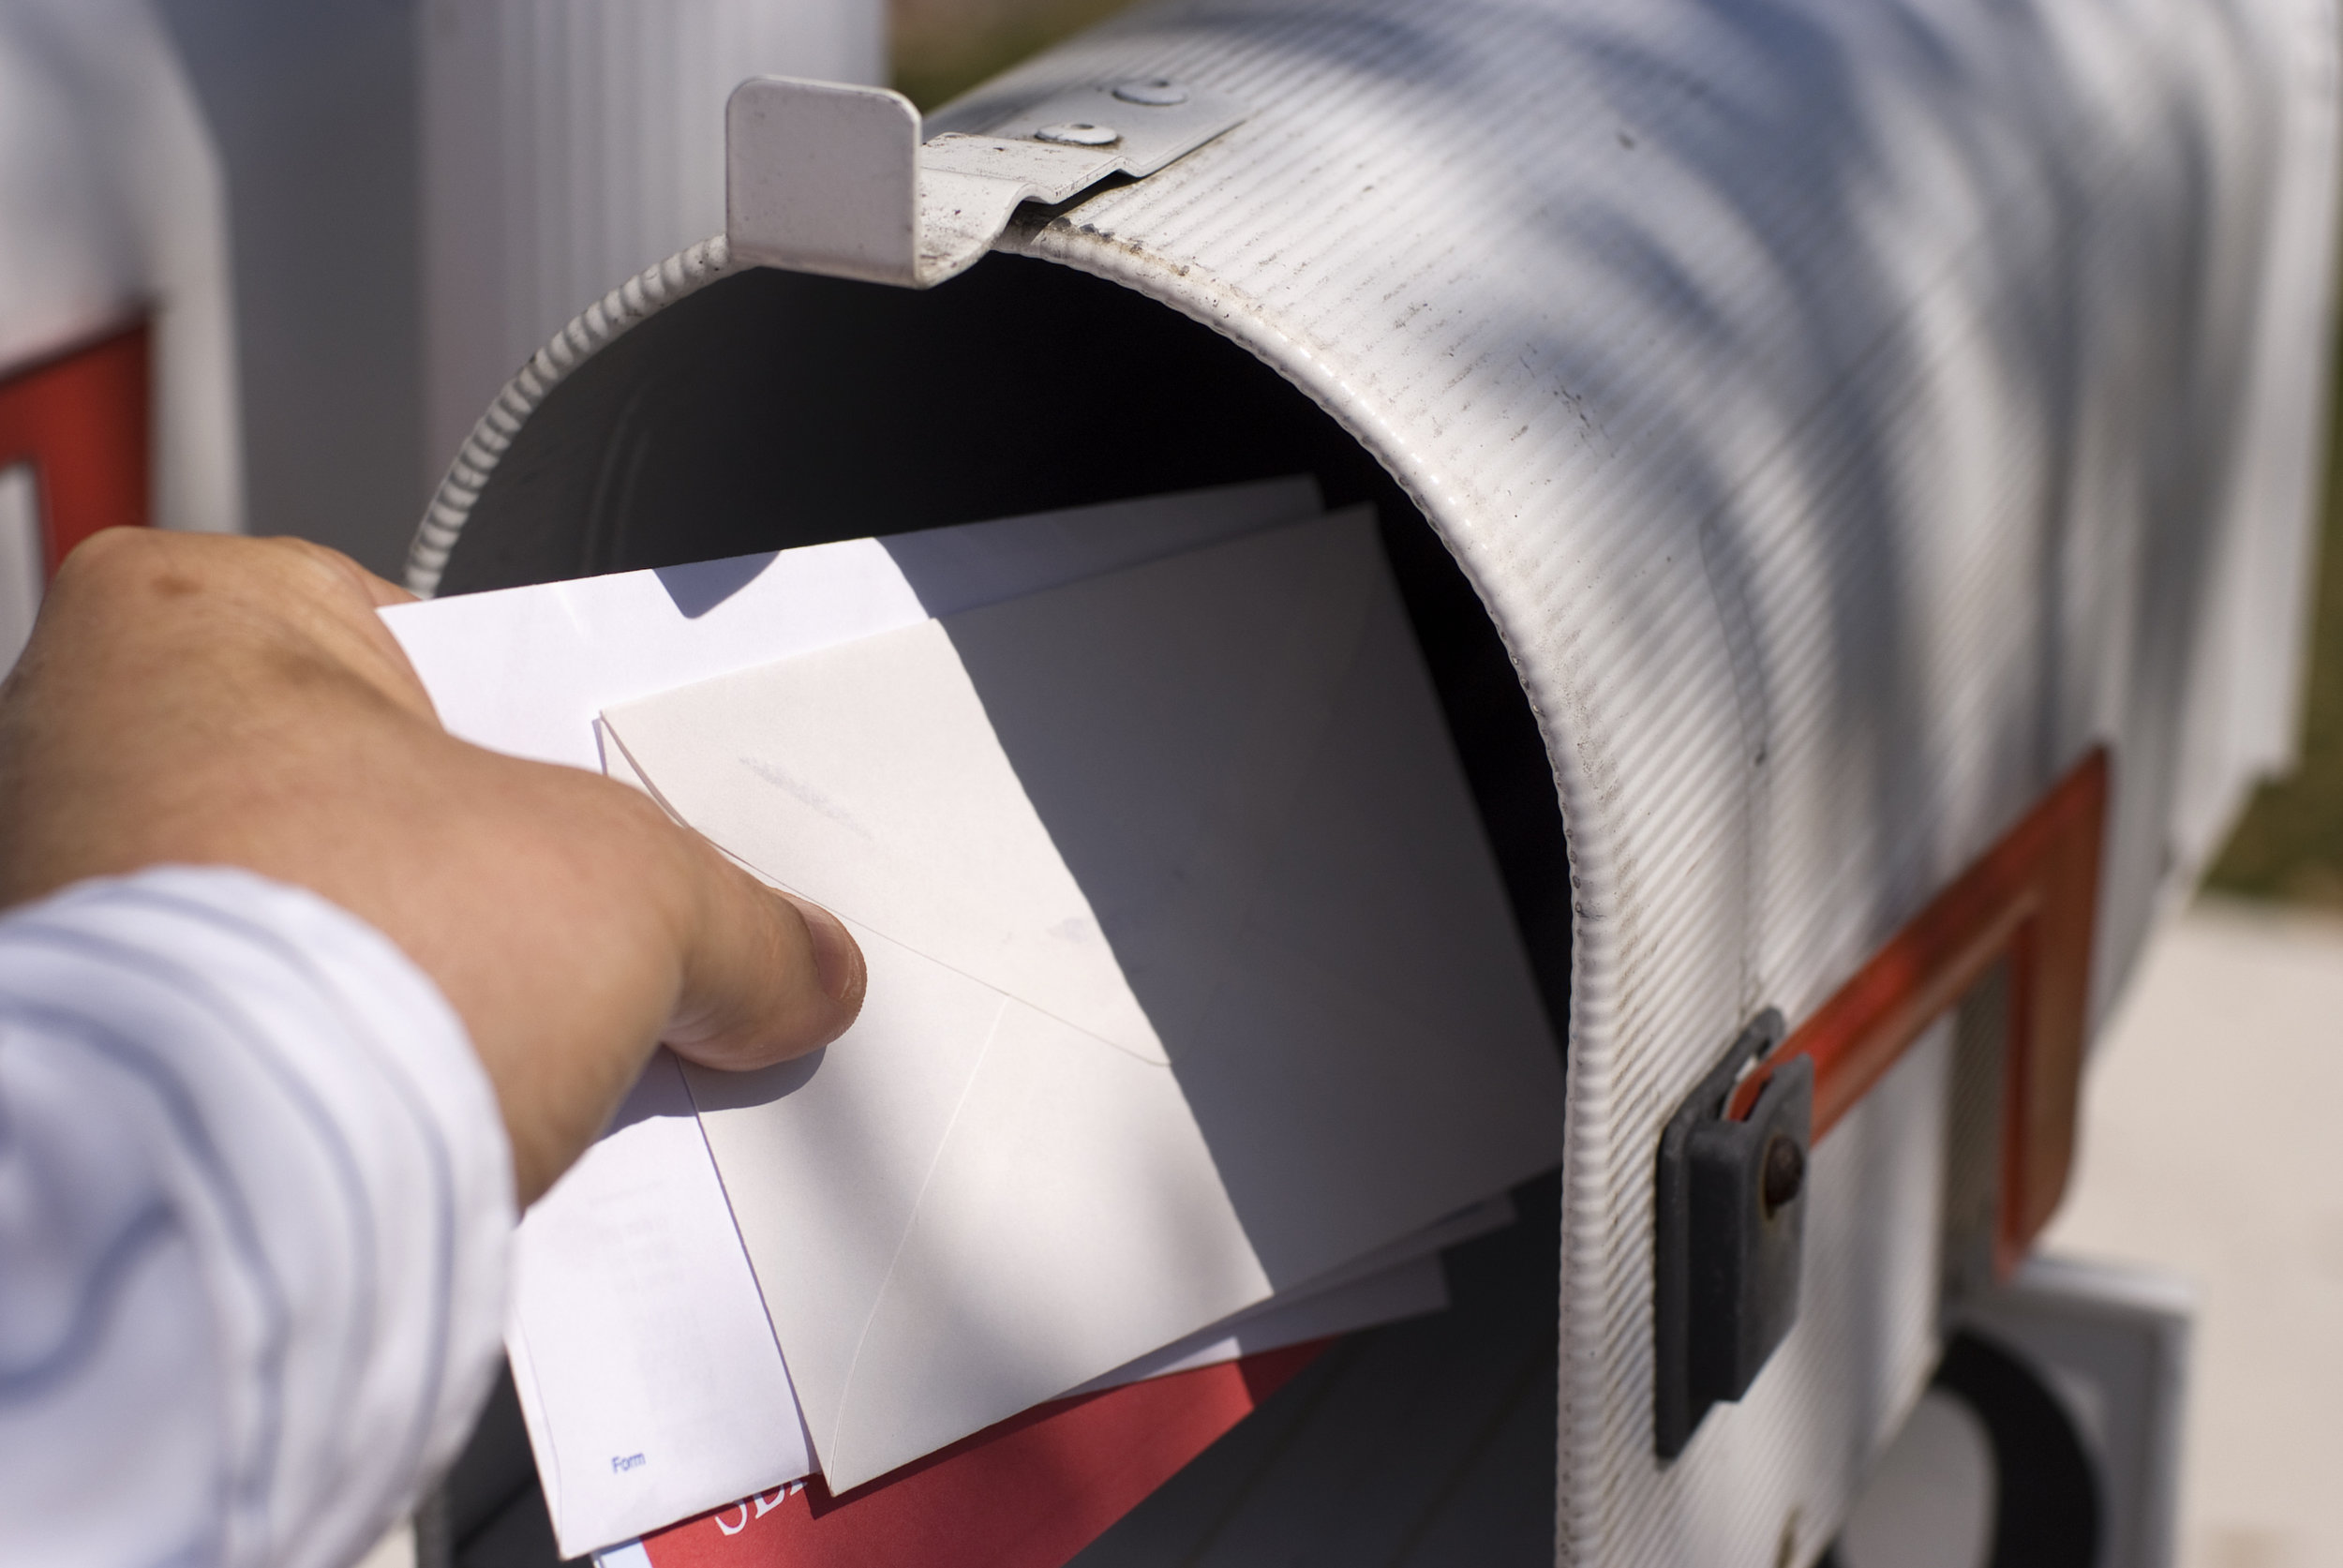 2018 Feb_Getting the mail image.jpg